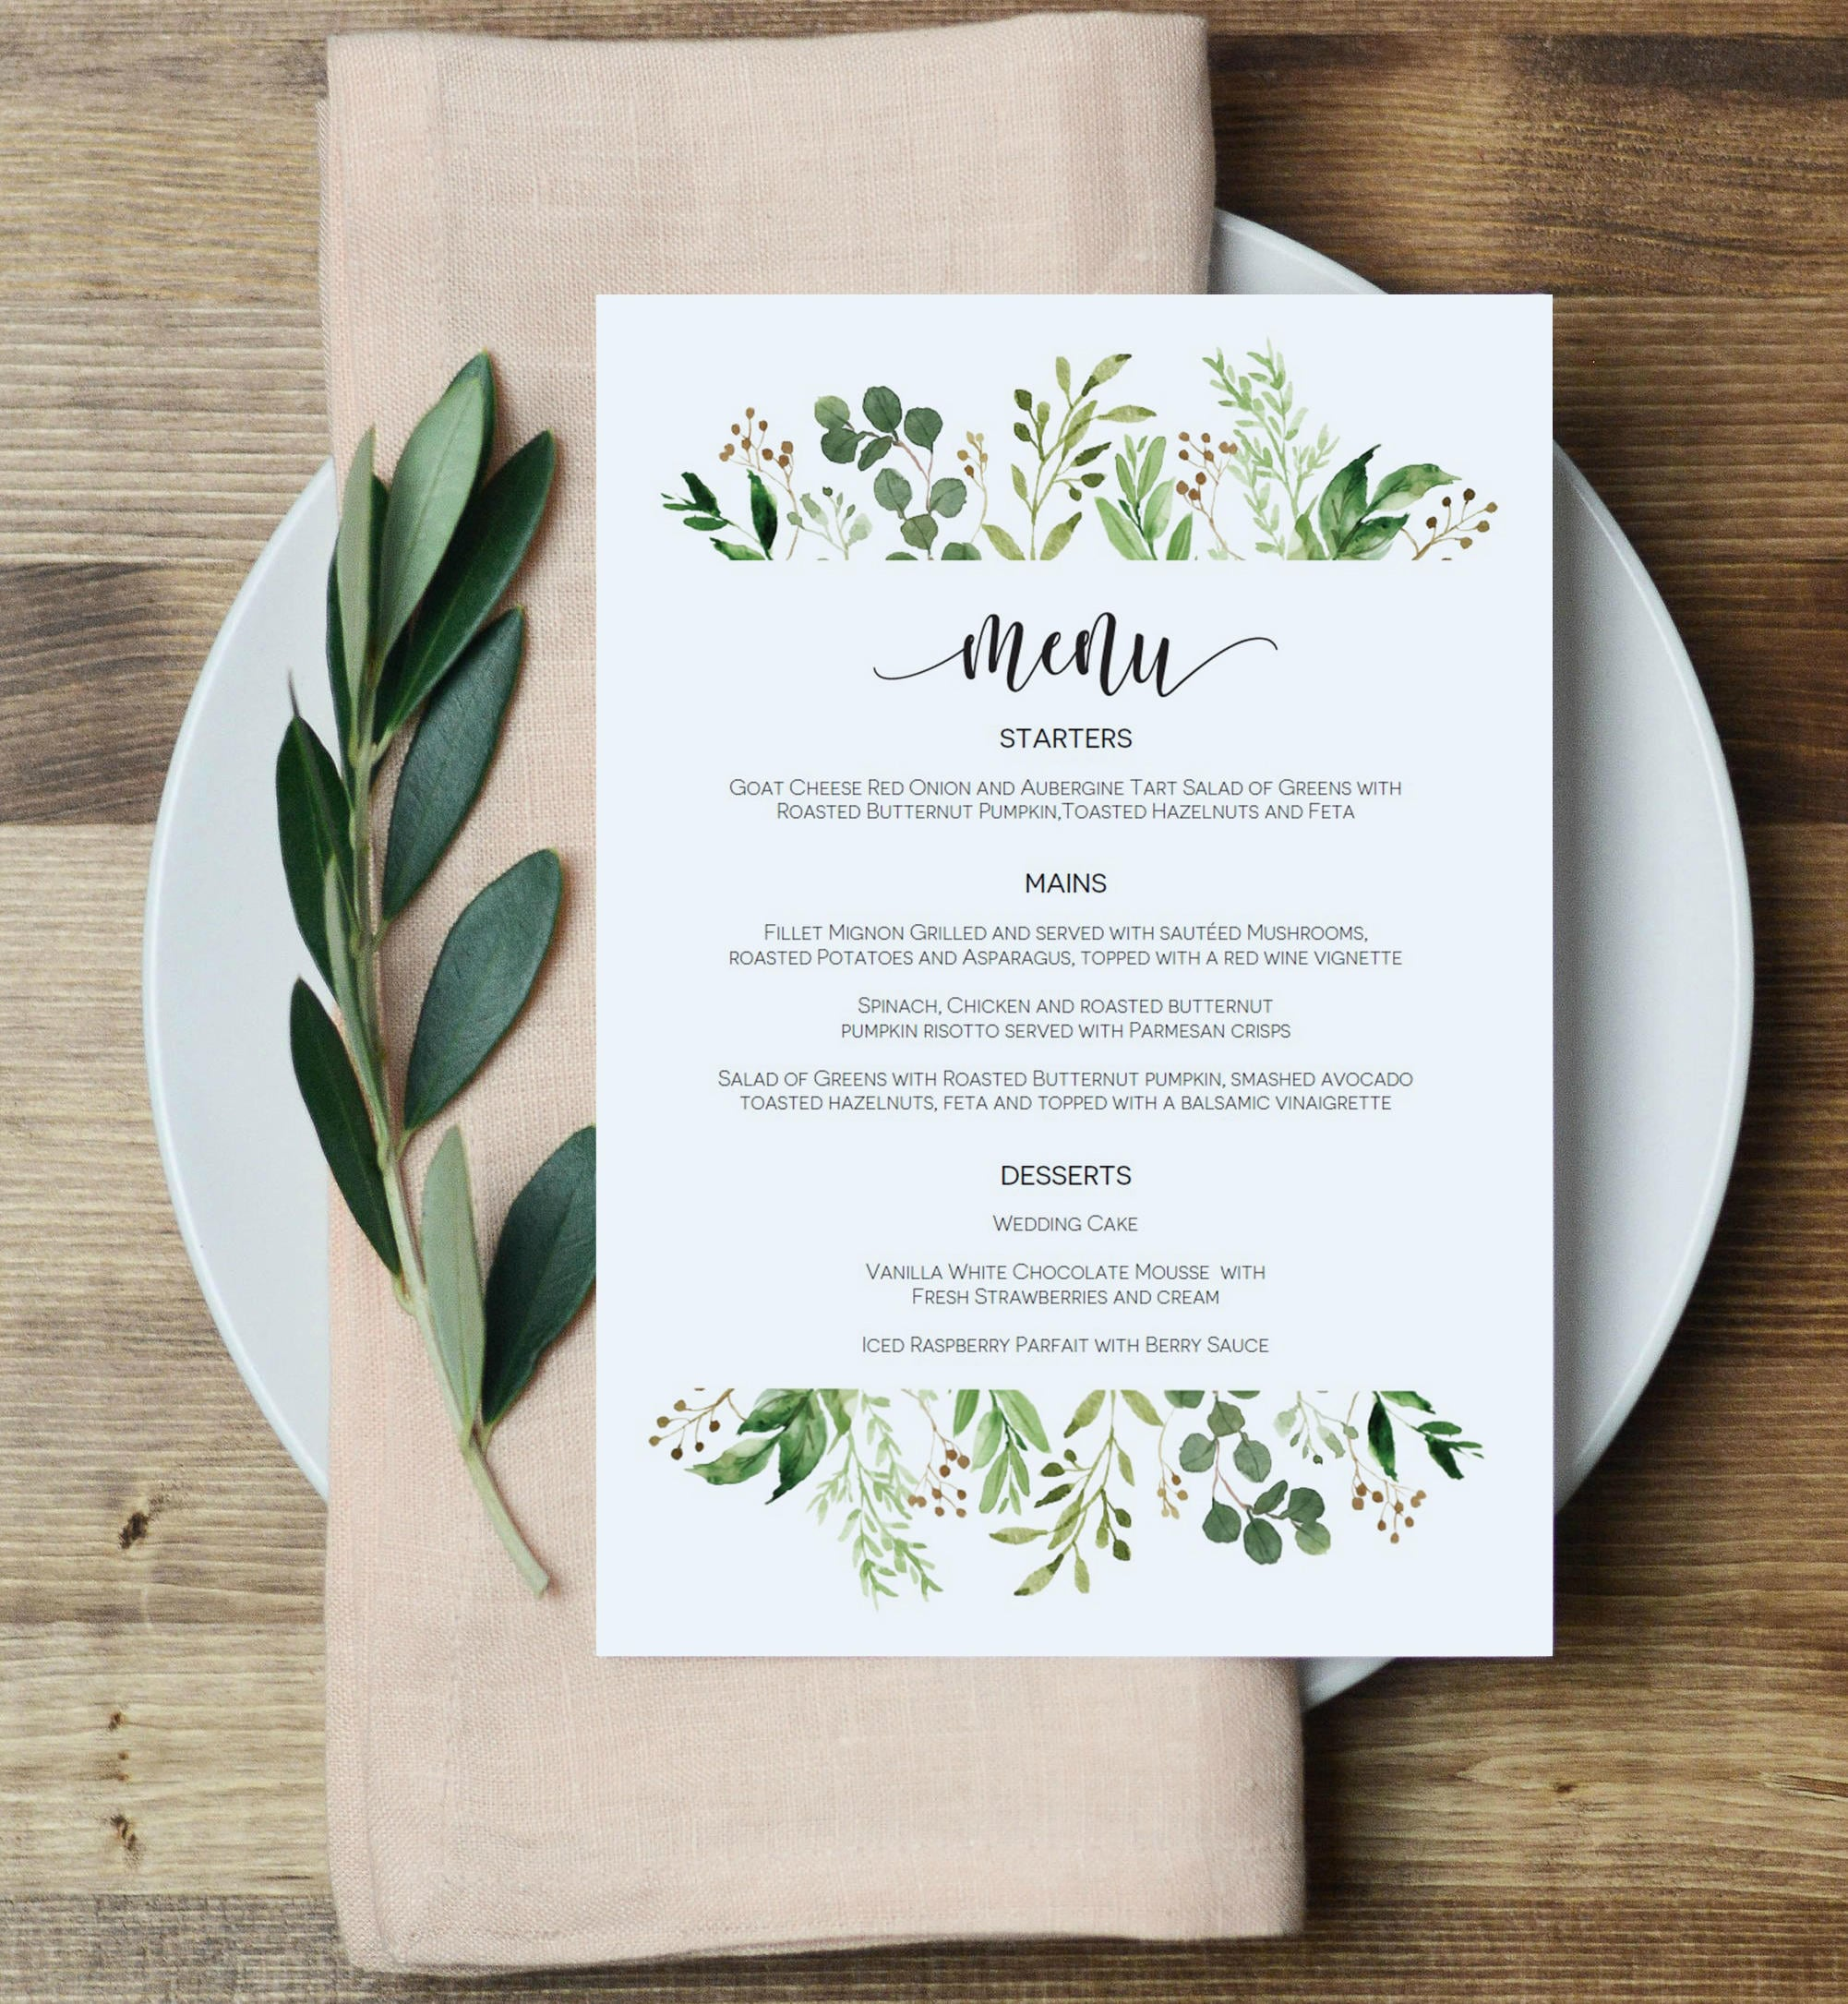 greenery menu card template 5x7 eucalyptus menu printable. Black Bedroom Furniture Sets. Home Design Ideas